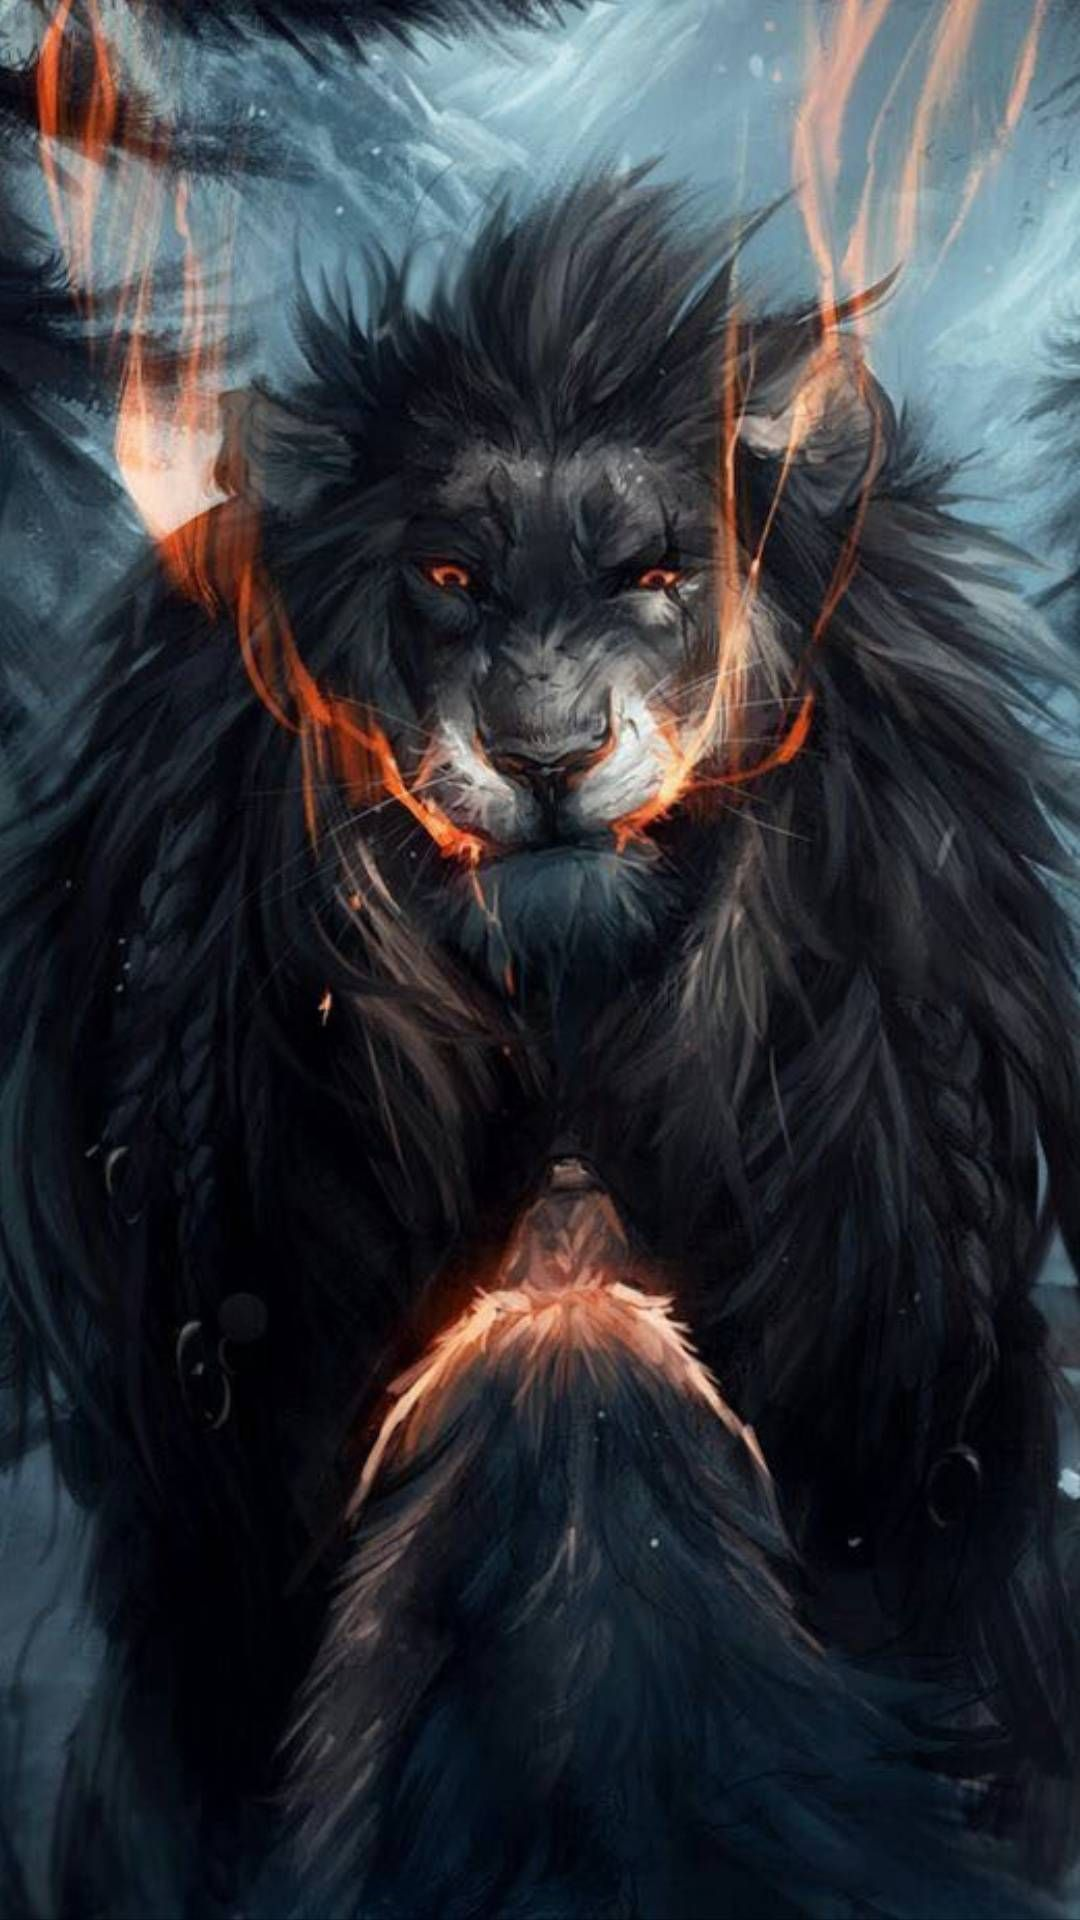 Lion Vs Wolf Iphone Wallpaper Iphonewallpaper Iphone Wallpaper Android Androidwallpaper Iphonebackground Mythical Creatures Art Lion Art Fantasy Beasts